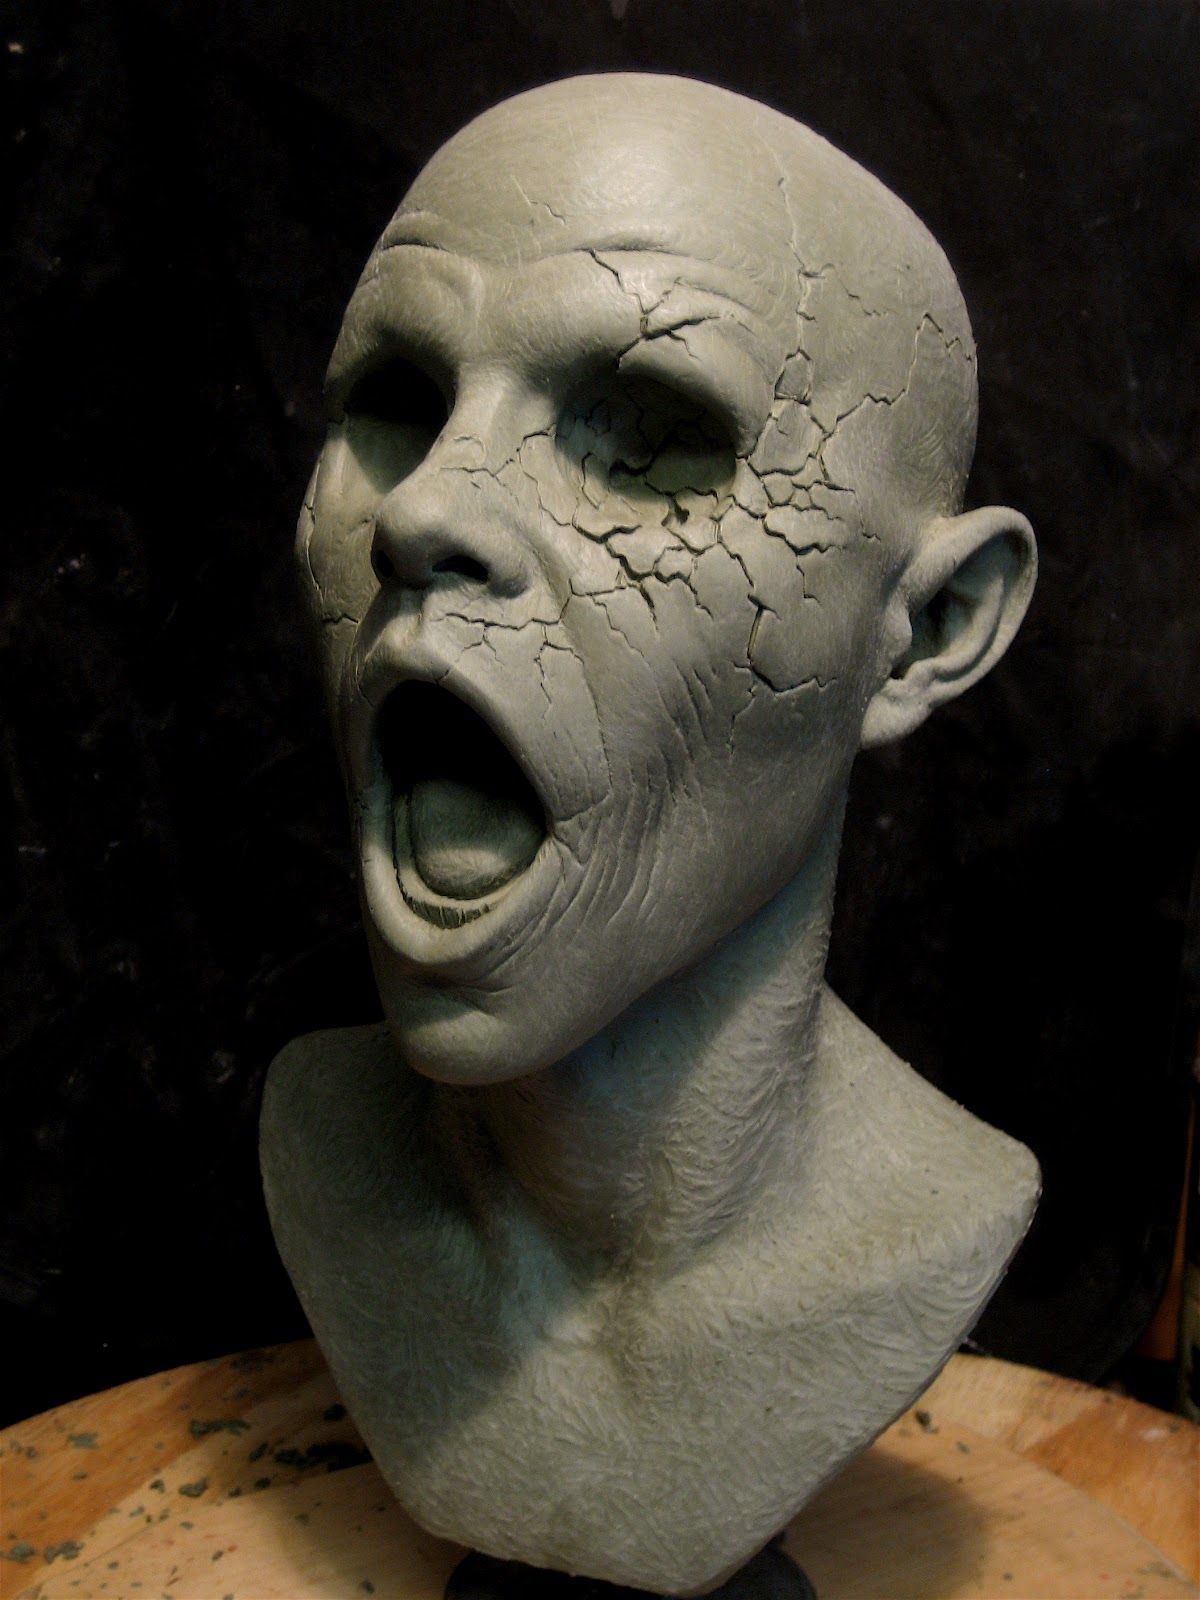 Zombie Sculpt Creatures In 2019 Sculpture Art